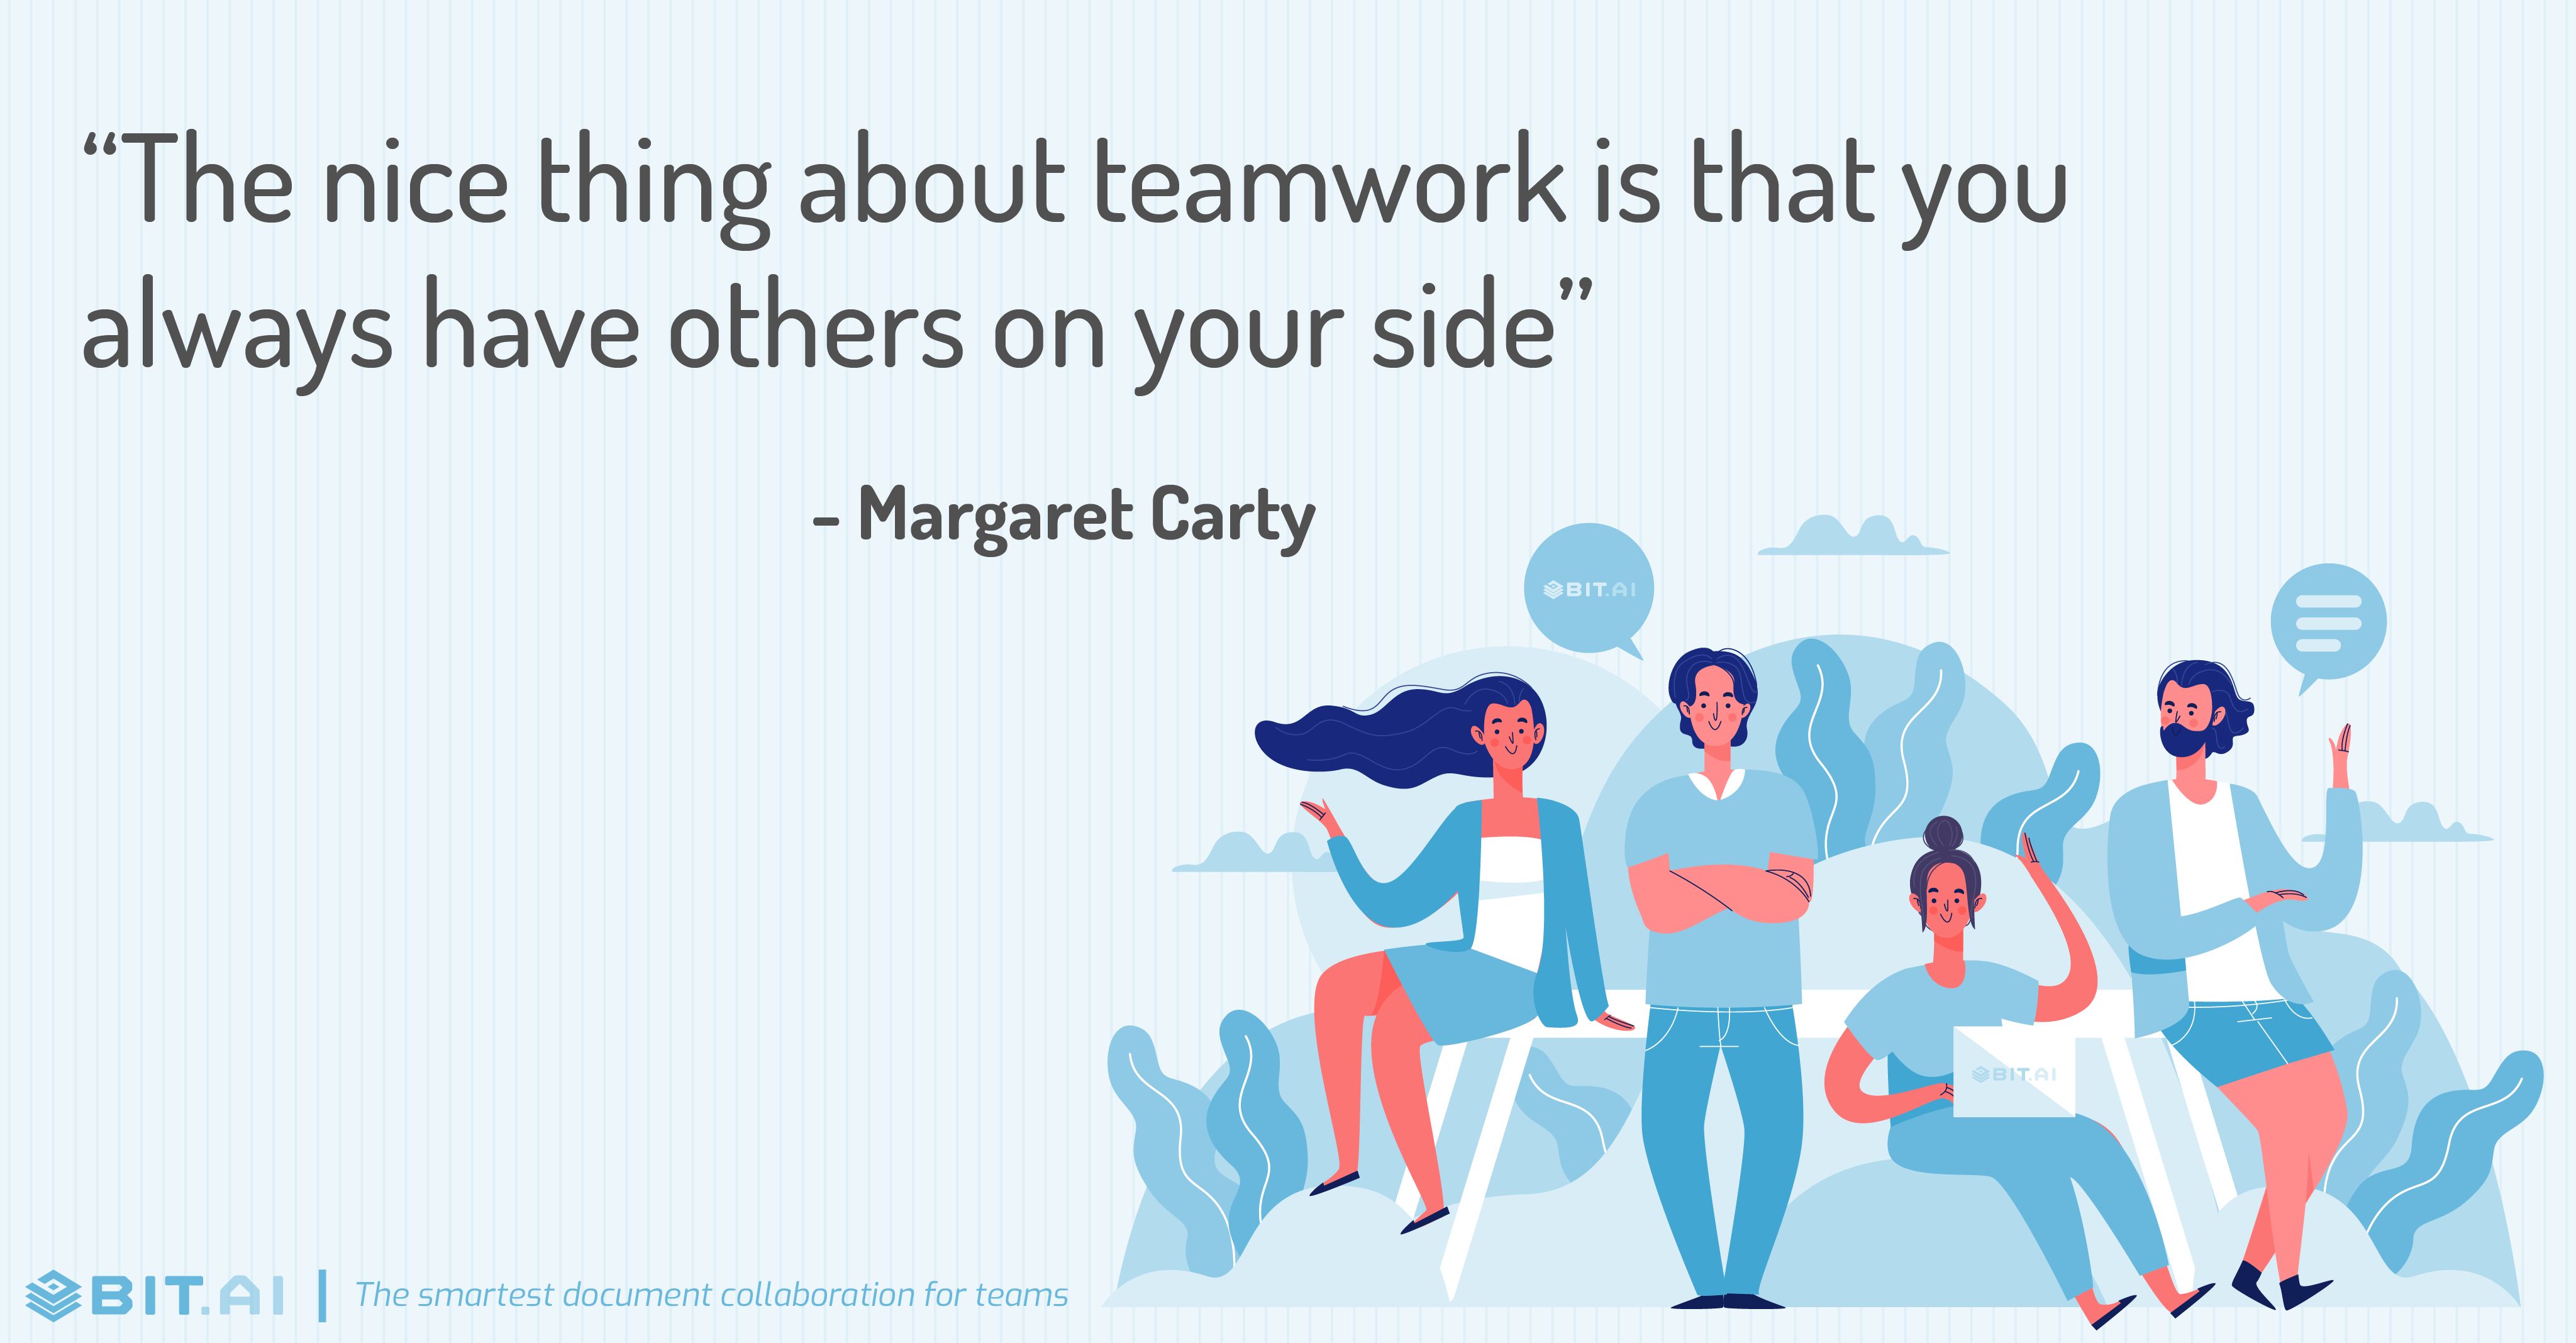 """The nice thing about teamwork is that you always have others on your side"" - Margaret Carty"